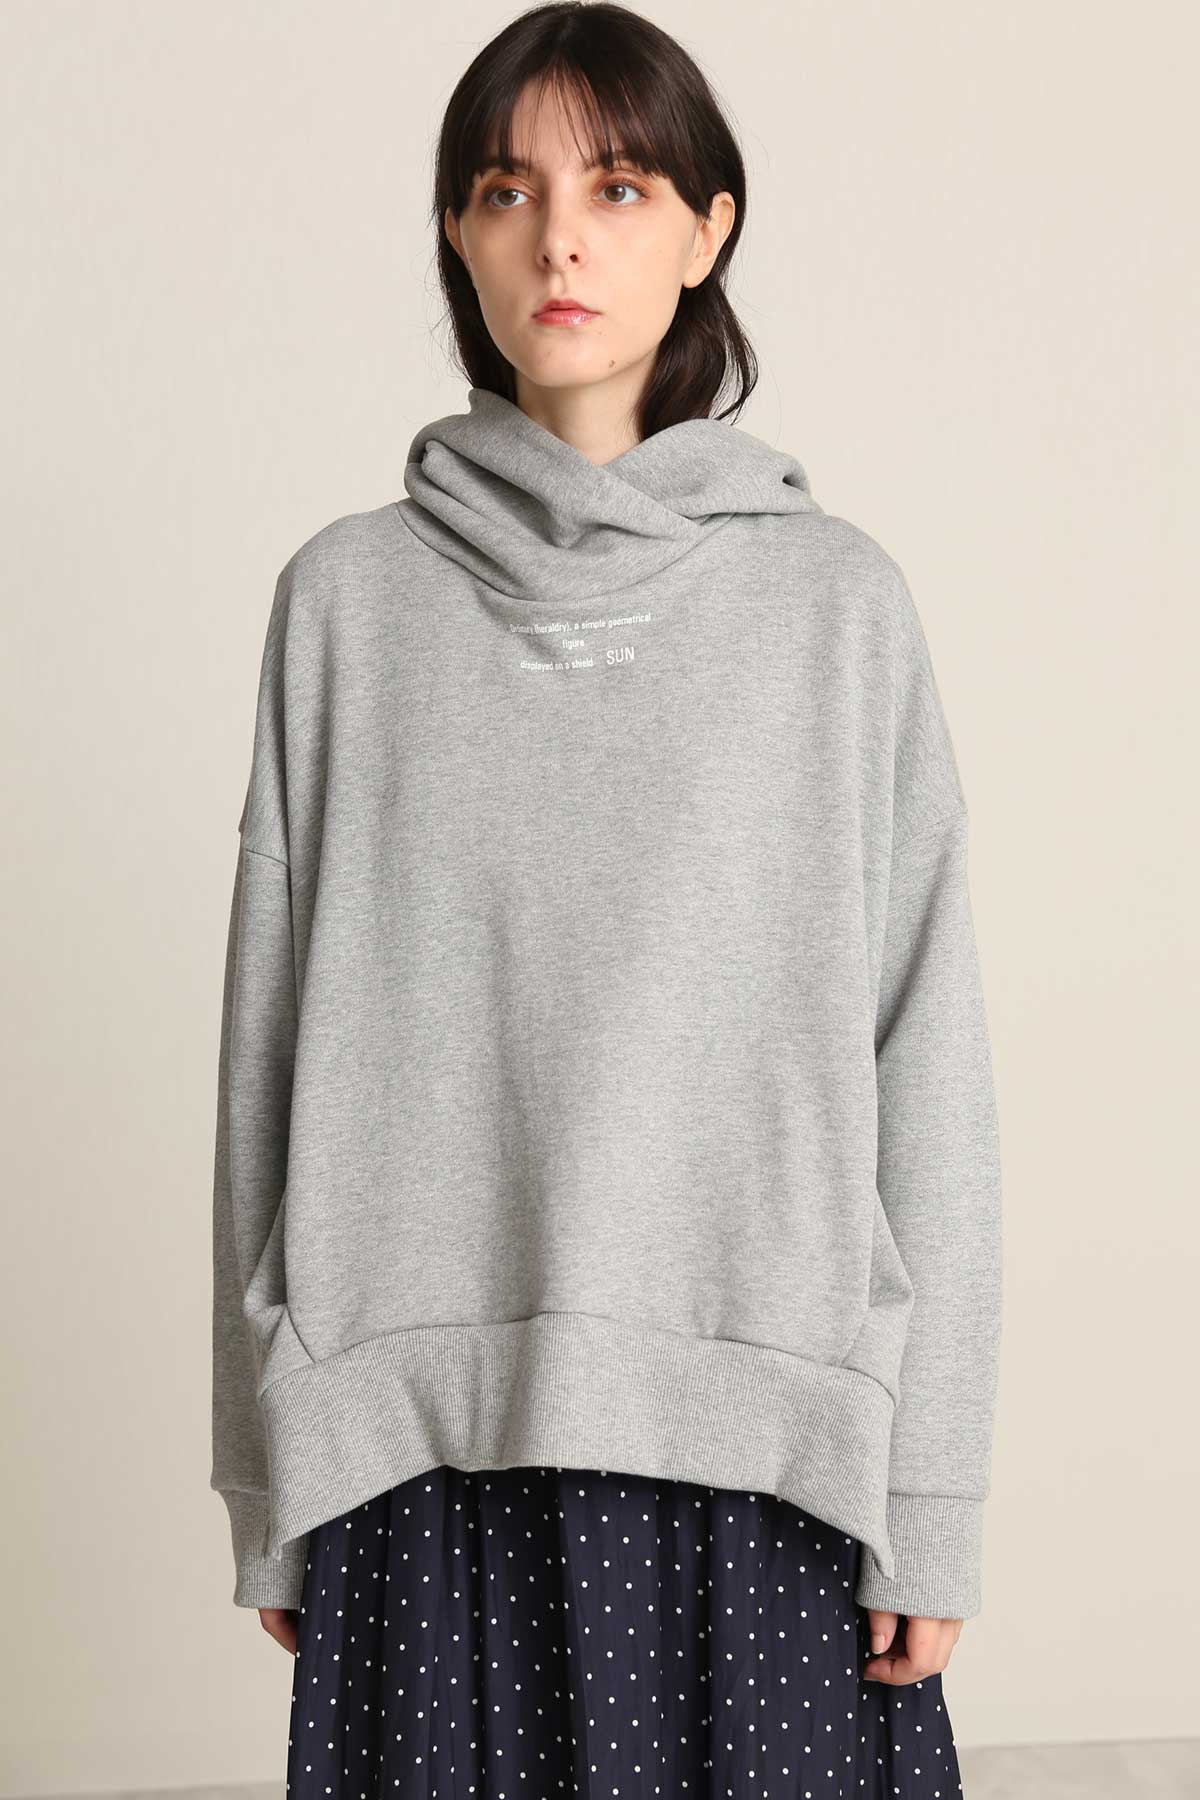 BO21-133T-gray Typographic Sweat Drape Hoodie-GRAY-【BO21-133T】Del.Dec.